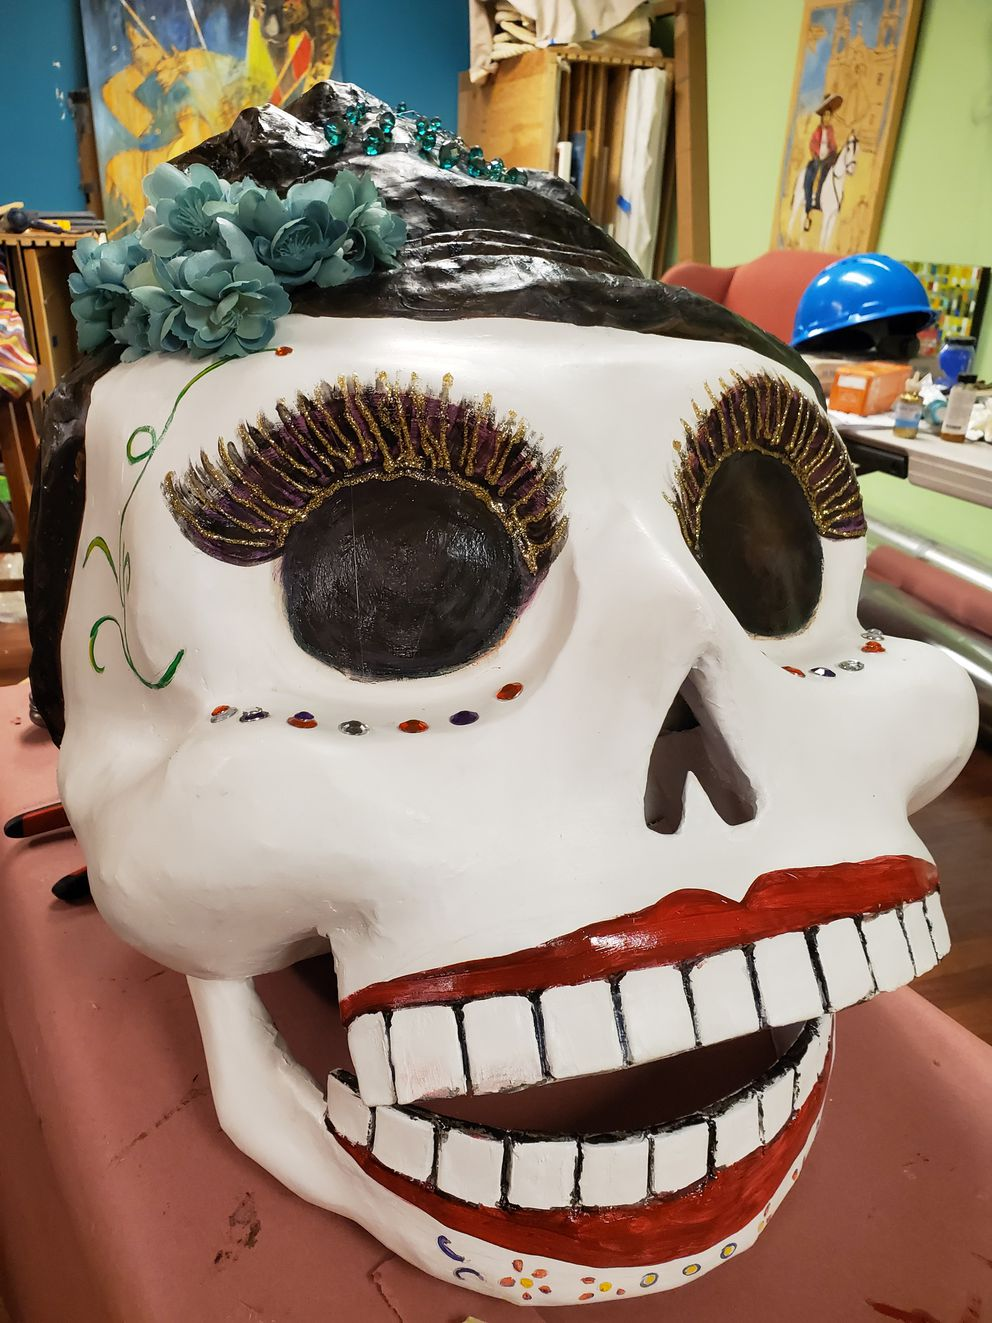 'Agripina ' is the new Catrina that will be debuting at the Día de Muertos procession in Anchorage Nov. 2. (Photo by Indra Arriaga)